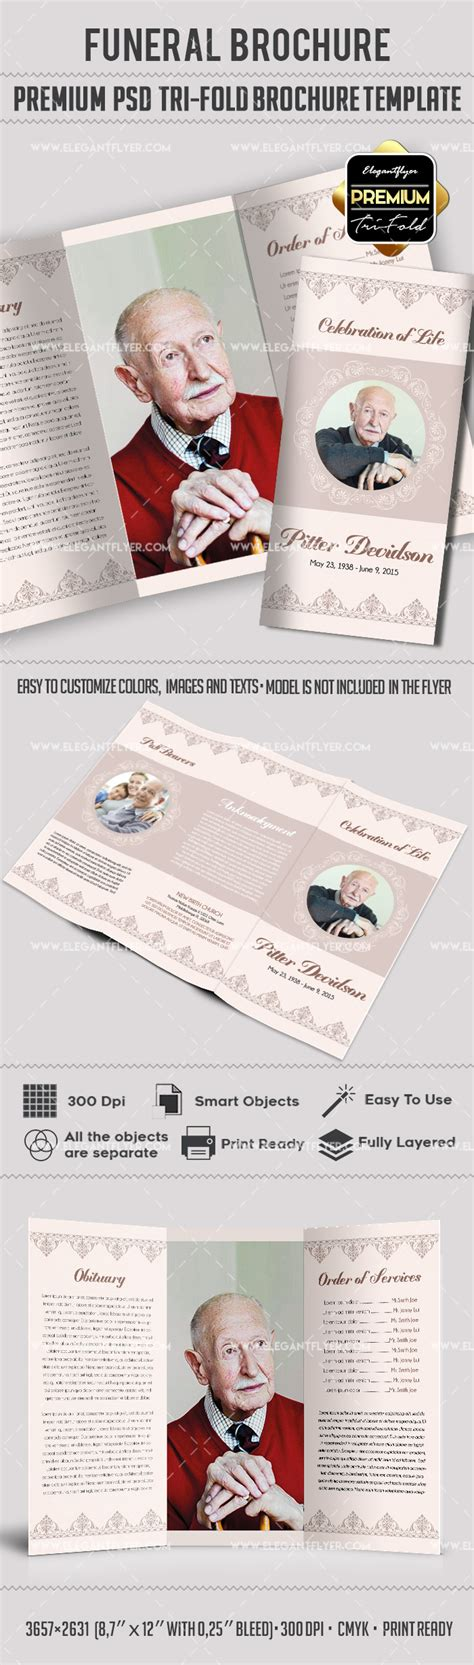 Tri Fold Funeral Service Brochure Template By Elegantflyer Funeral Brochure Template